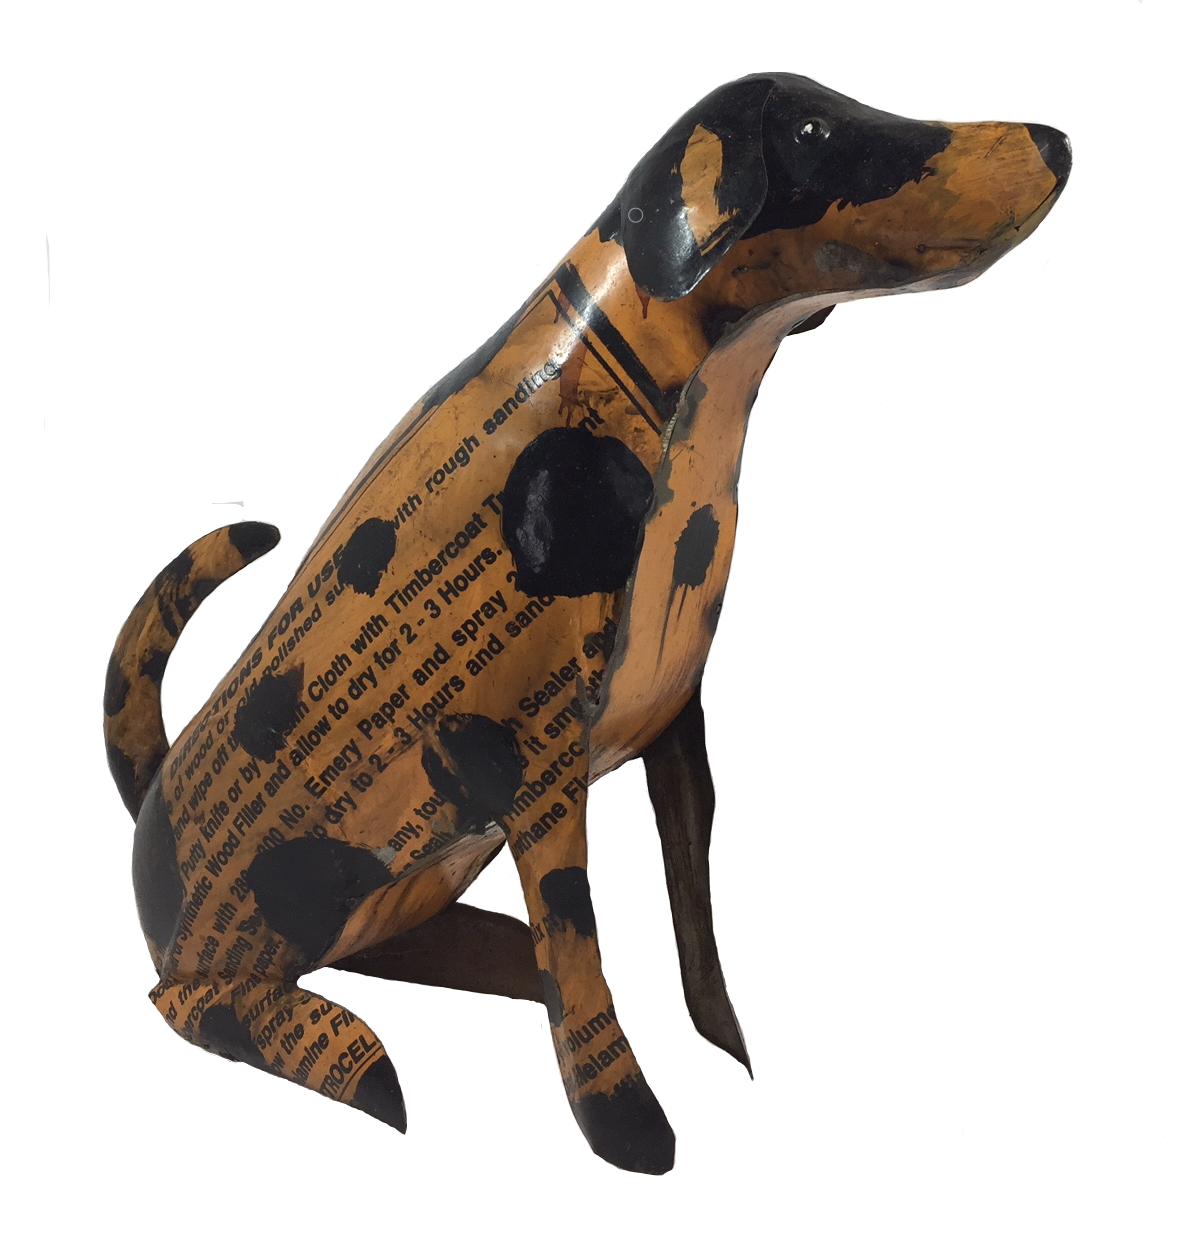 Recycled metal yellow dog